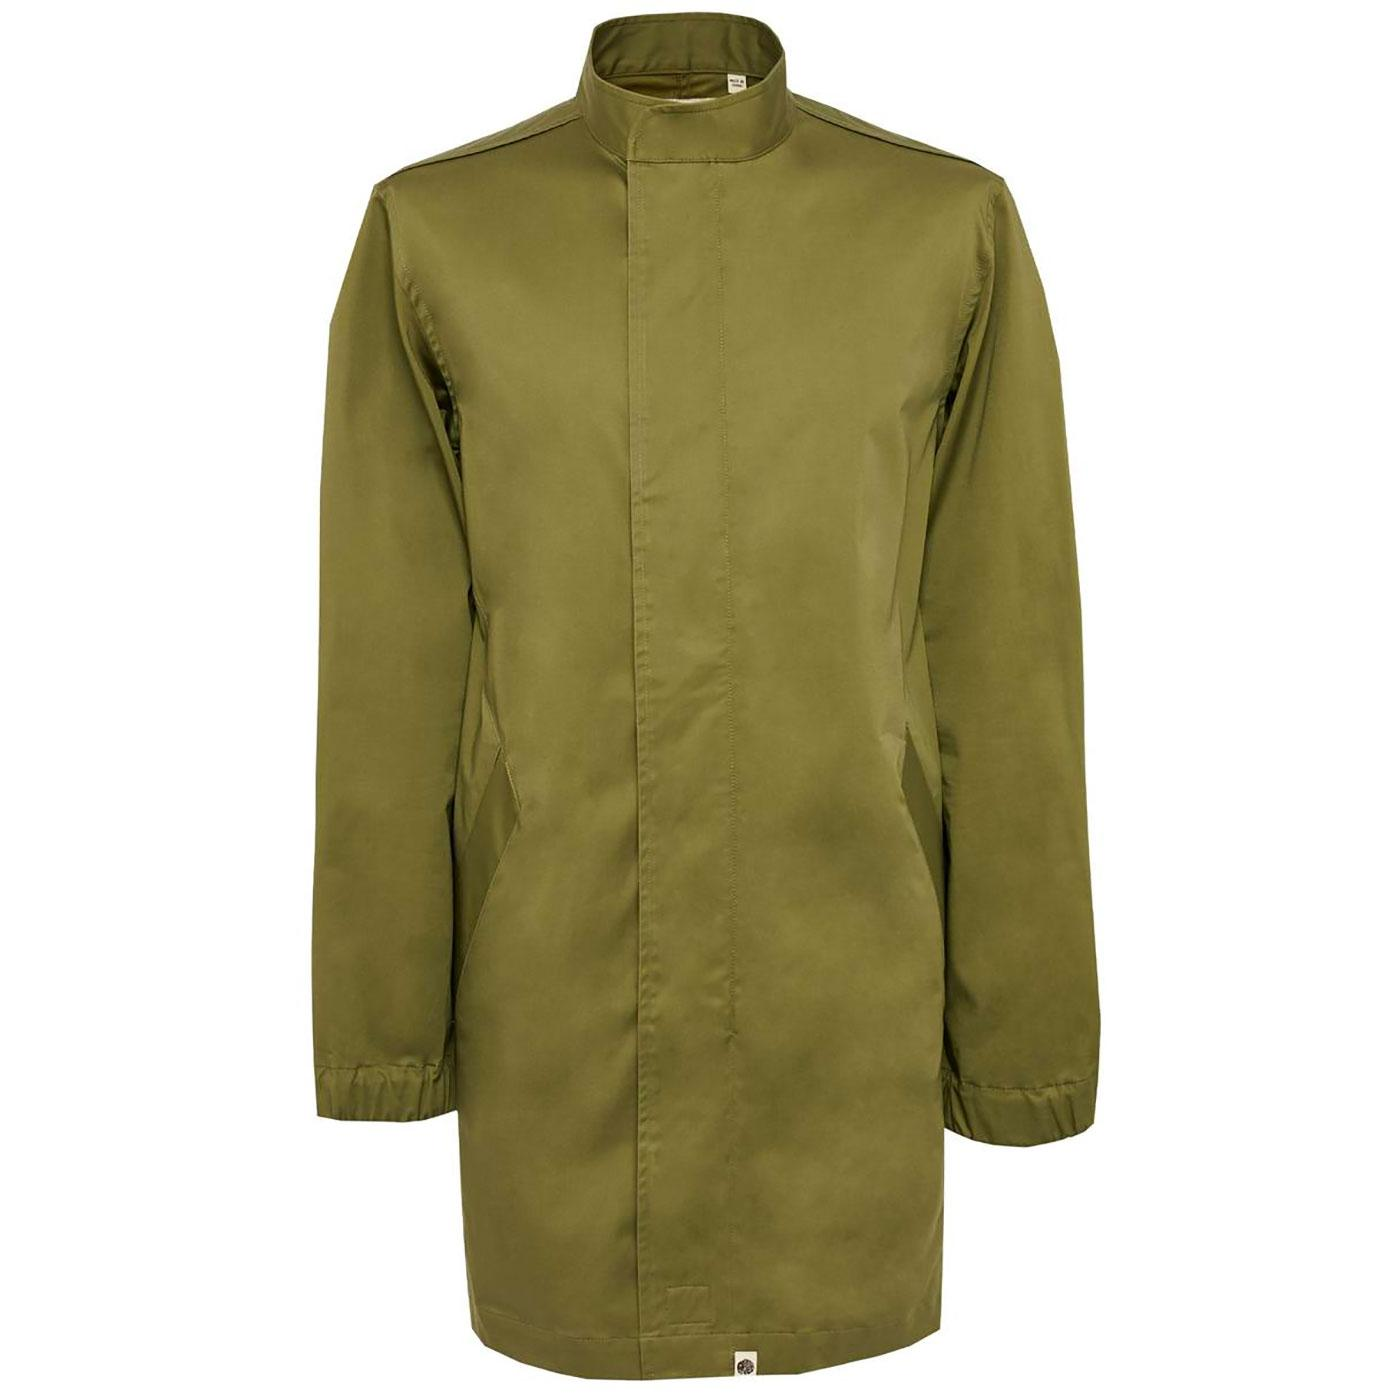 PRETTY GREEN Mod Collarless Zip Up Mac Jacket (K)